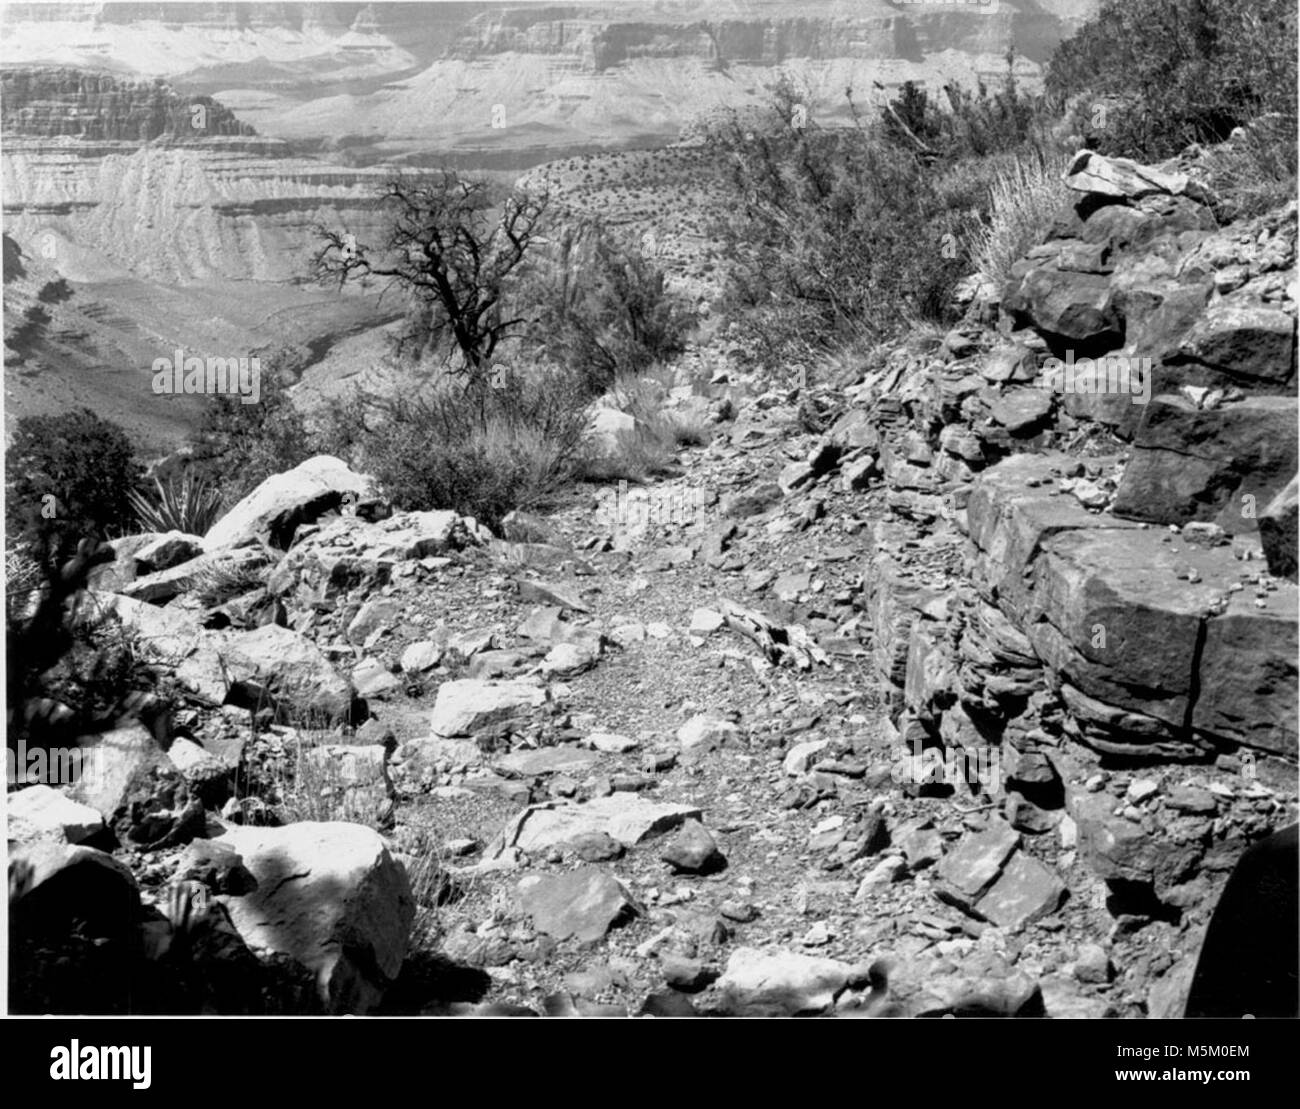 D Grand Canyon Historic Grandview Trail . GRANDVIEW TRAIL STORM DAMAGE. - Stock Image